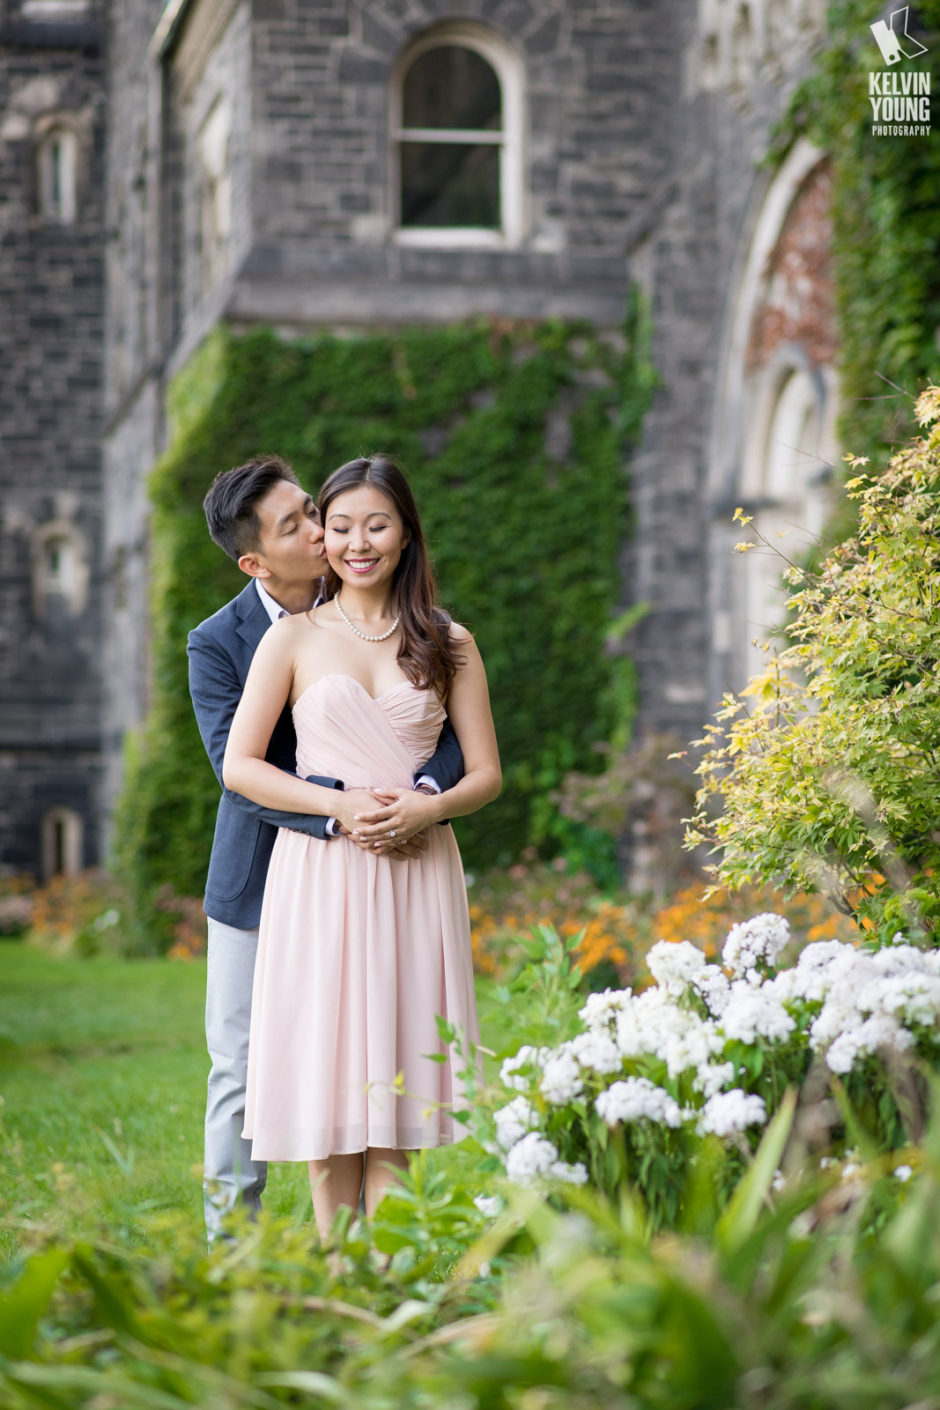 kelvin-young-photography_grace-weyman-toronto-engagement-photos_010